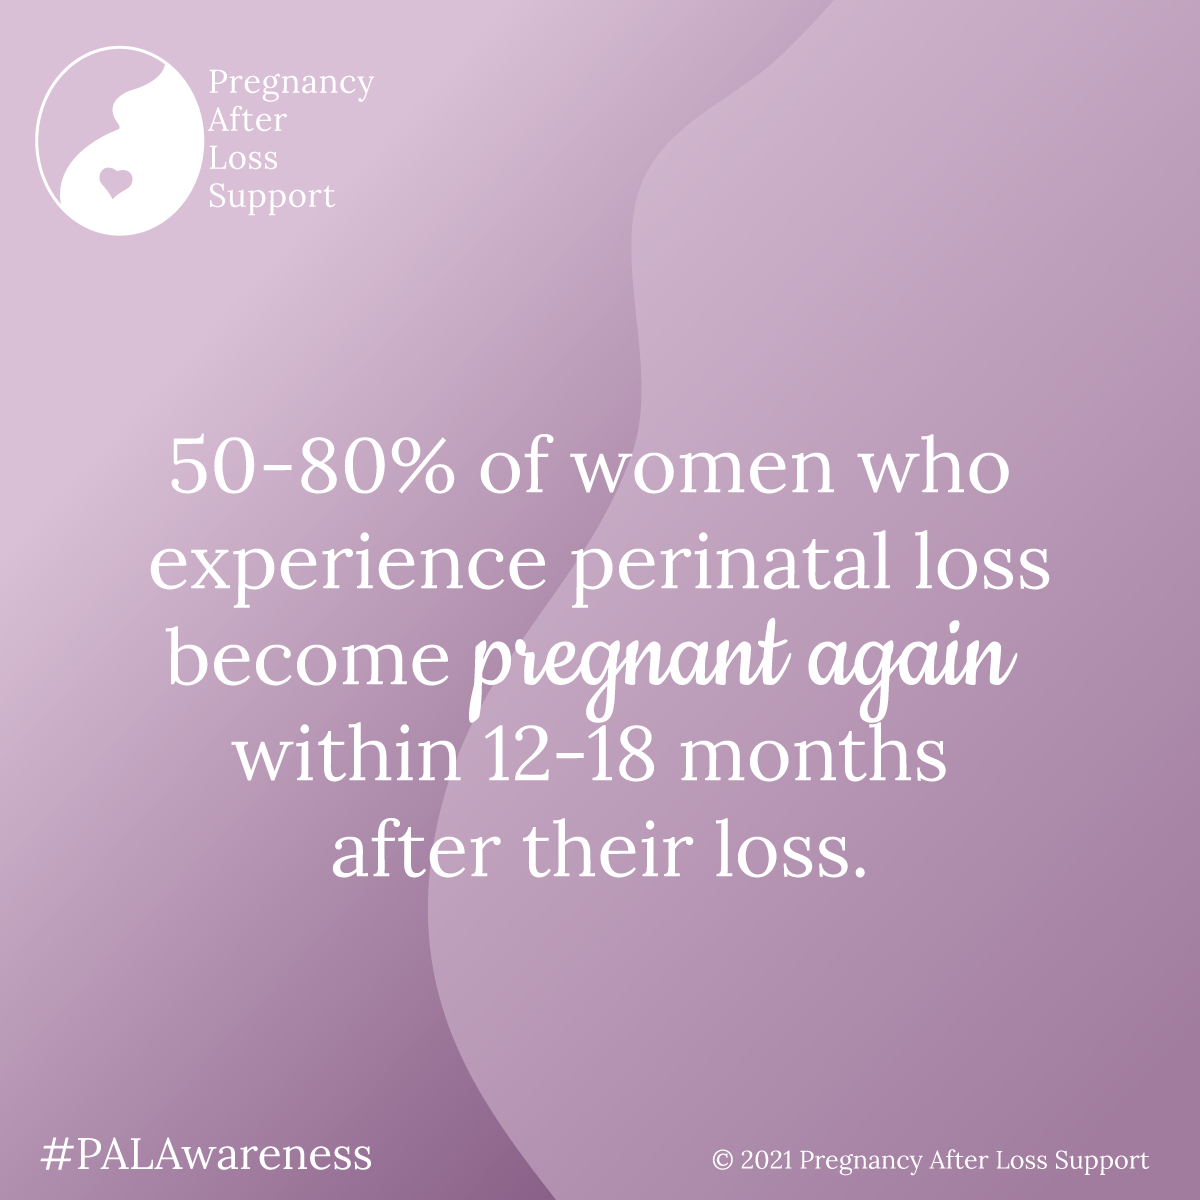 50-80% of women who experience perinatal loss become pregnant again within 12-18 months after their loss